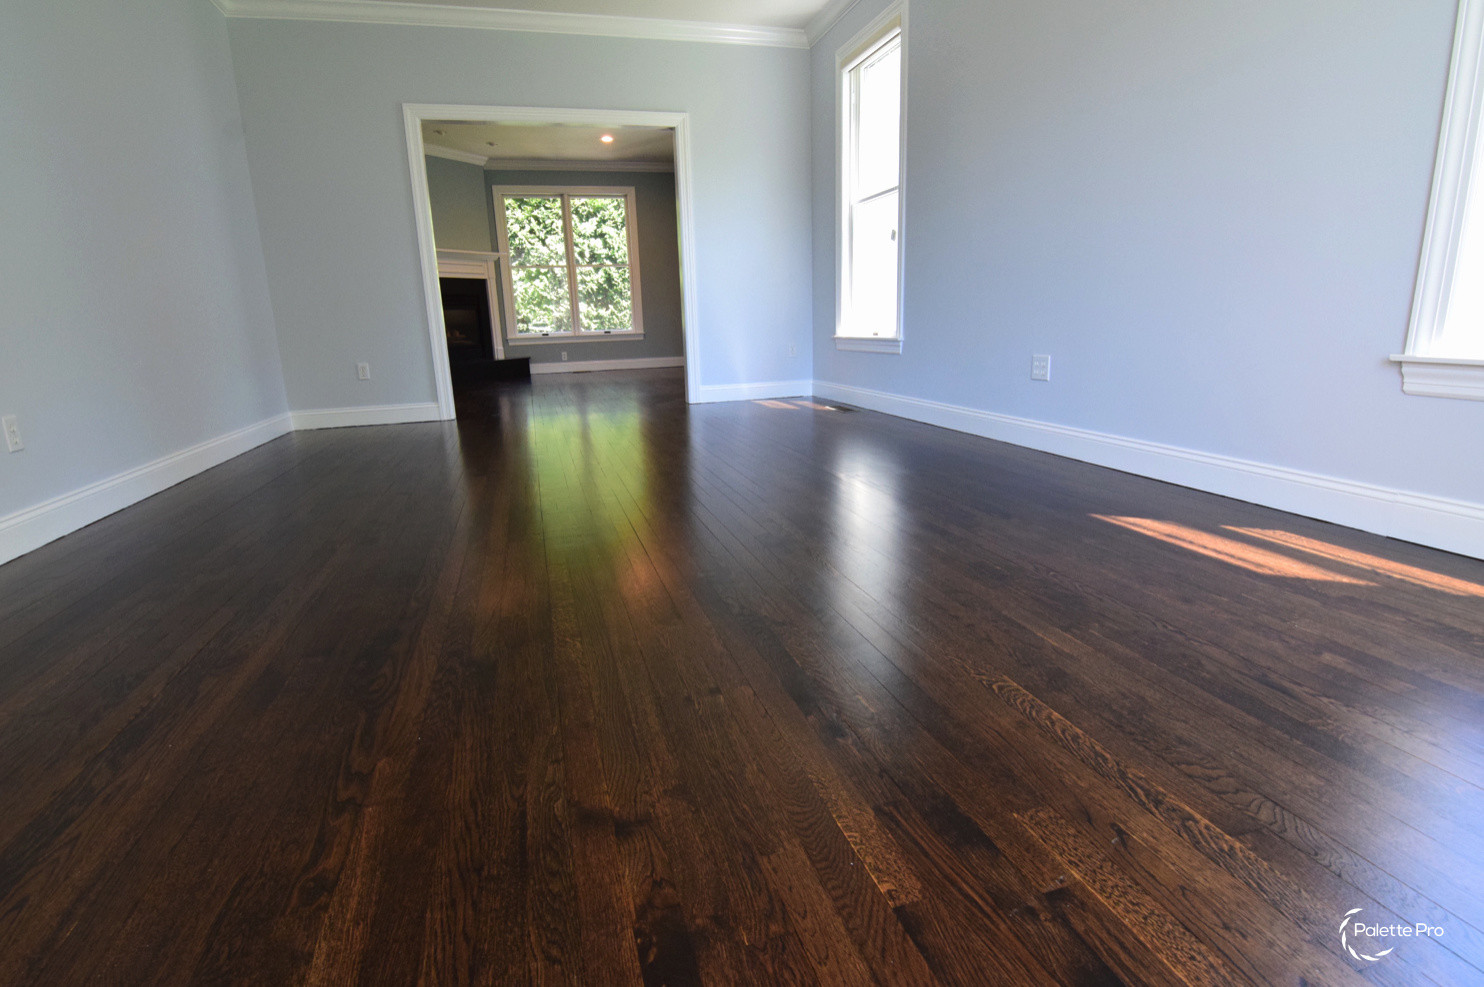 hardwood floor epoxy filler of hardwoodfloor low voc canada archives wlcu throughout hardwood floor repair near me awesome hardwood floor refinishing hardwood floor repair